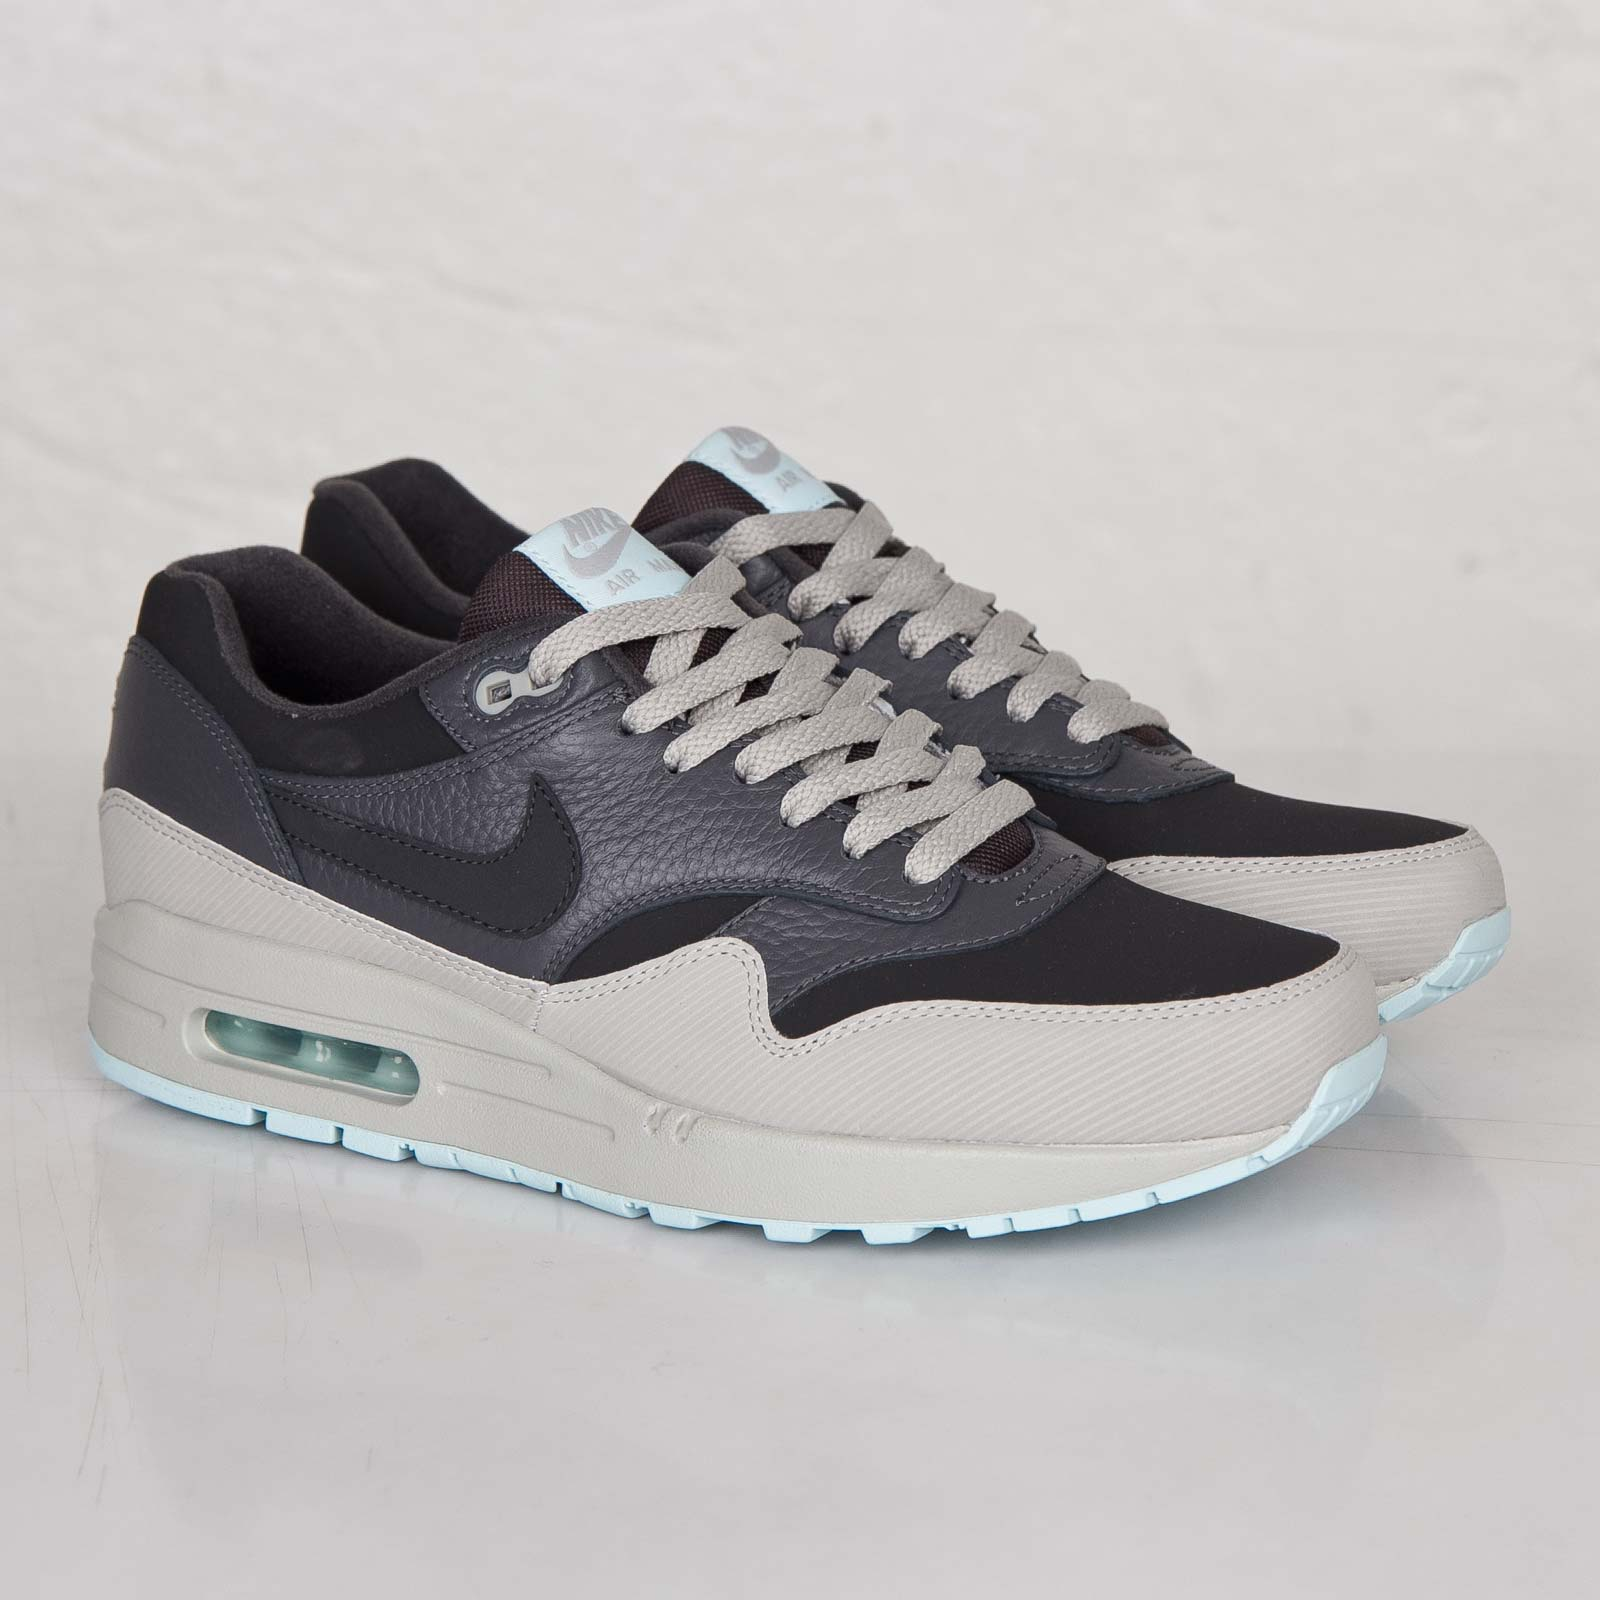 c259d50bc80f Nike Air Max 1 Leather - 654466-201 - Sneakersnstuff